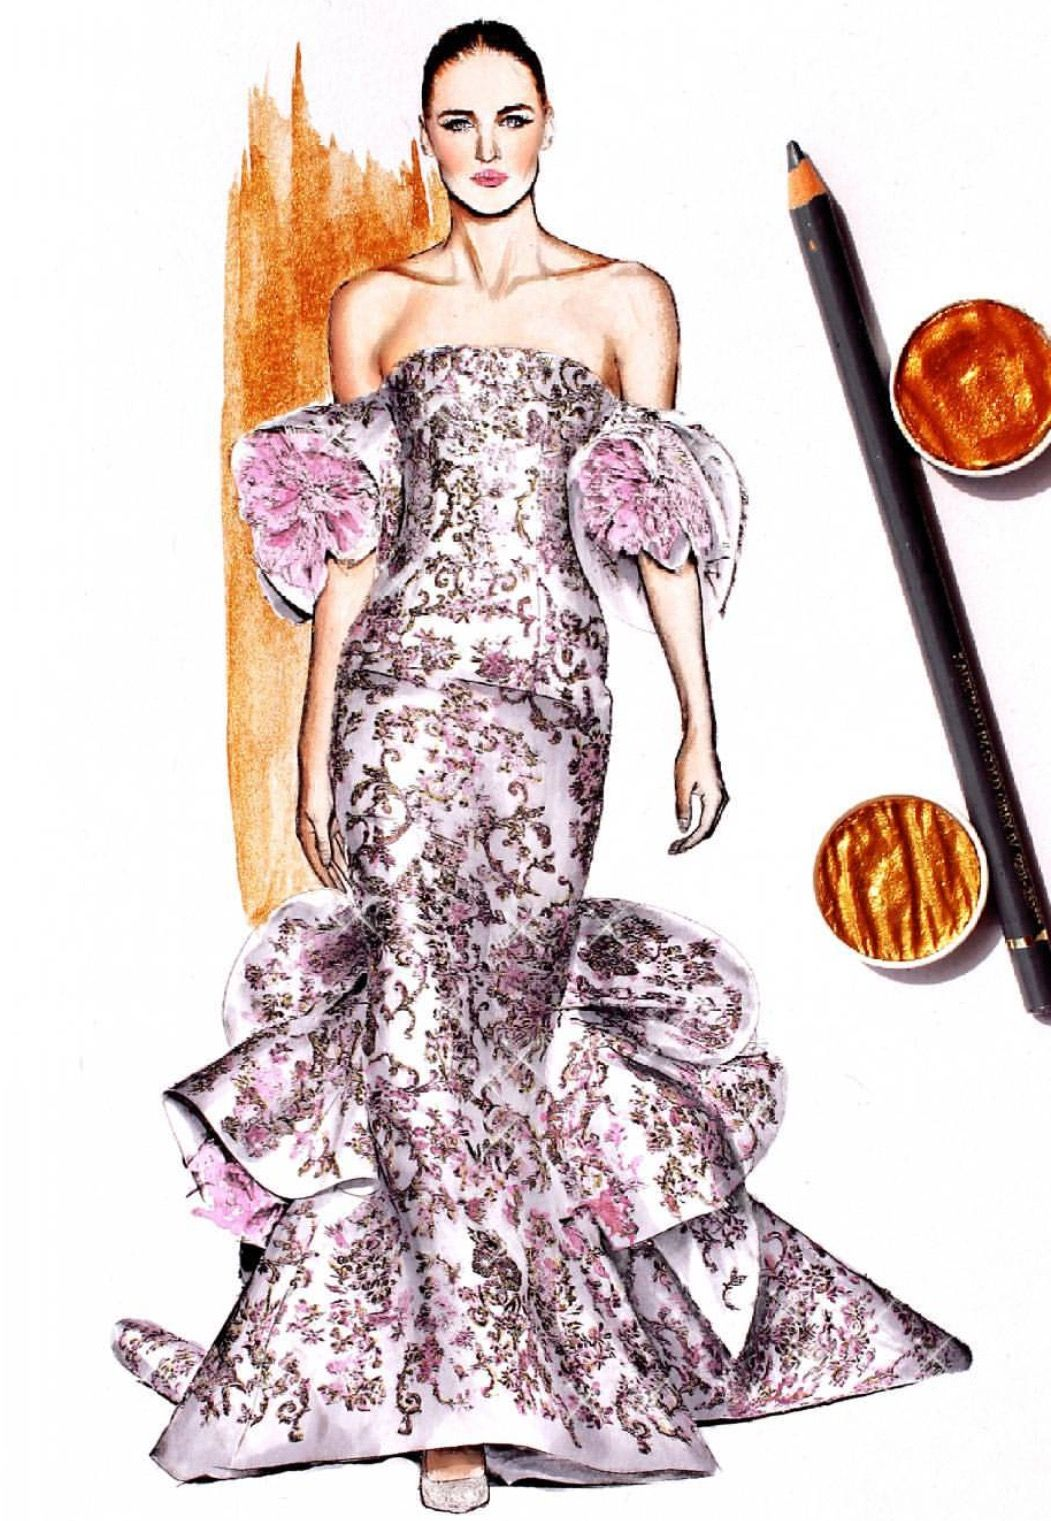 R A L P H § R U S S O Haute Couture Fall-Winter 2017- 2018 @nina.mid.illustration #FashionIllustrations| Be Inspirational ❥|Mz. Manerz: Being well dressed is a beautiful form of confidence, happiness & politeness